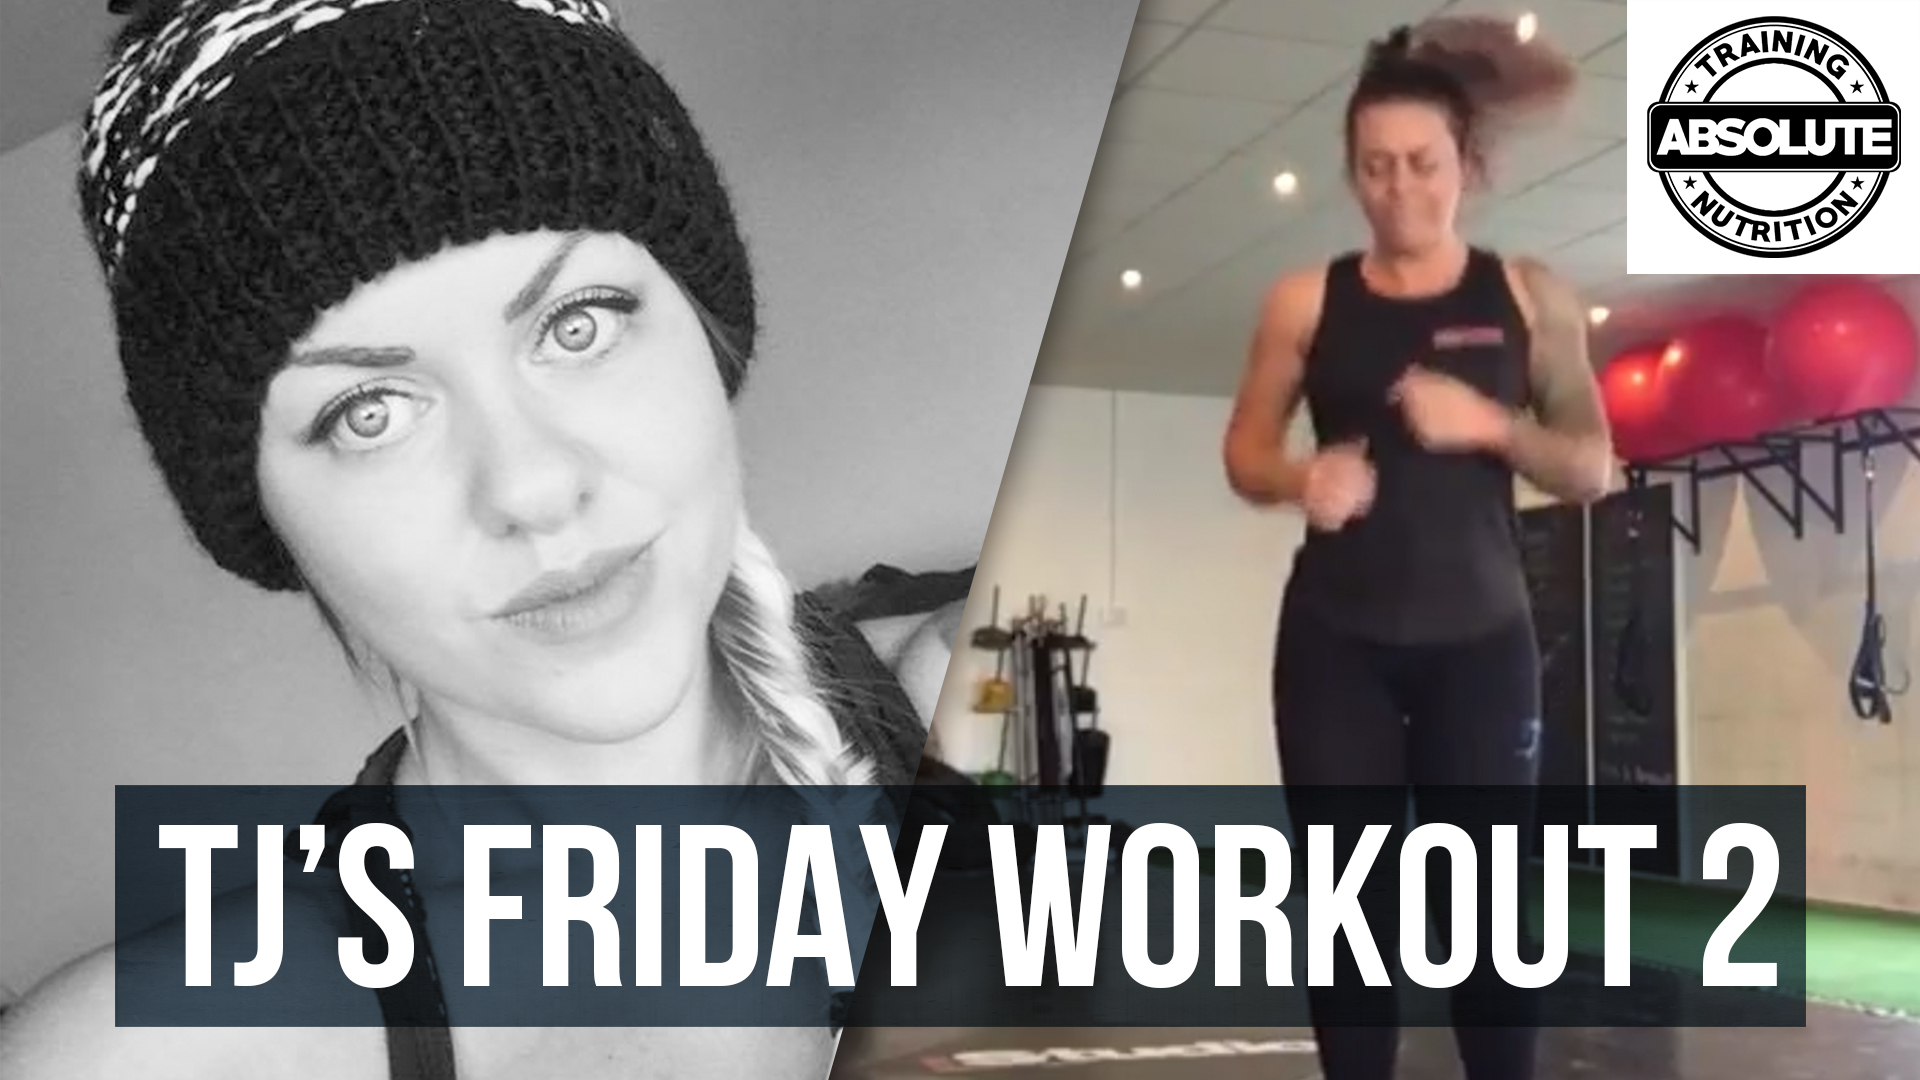 TJ Friday Workout 2